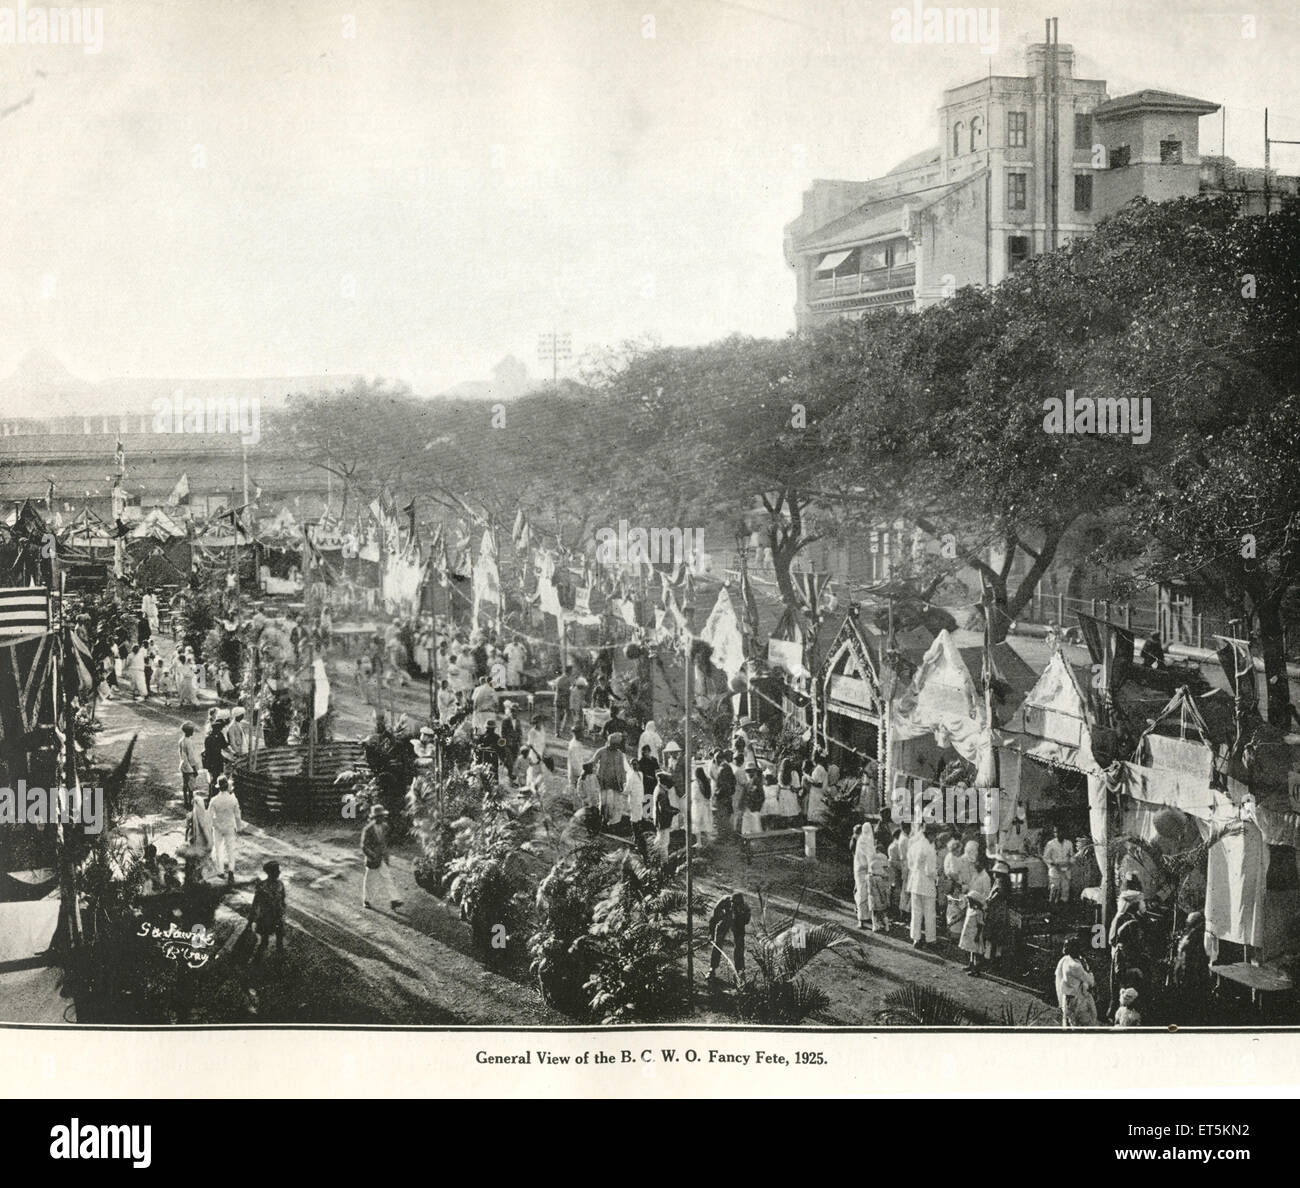 Catholic Community General View of the B. C. W. O. Fancy Fete ; 1925 ; India - Stock Image